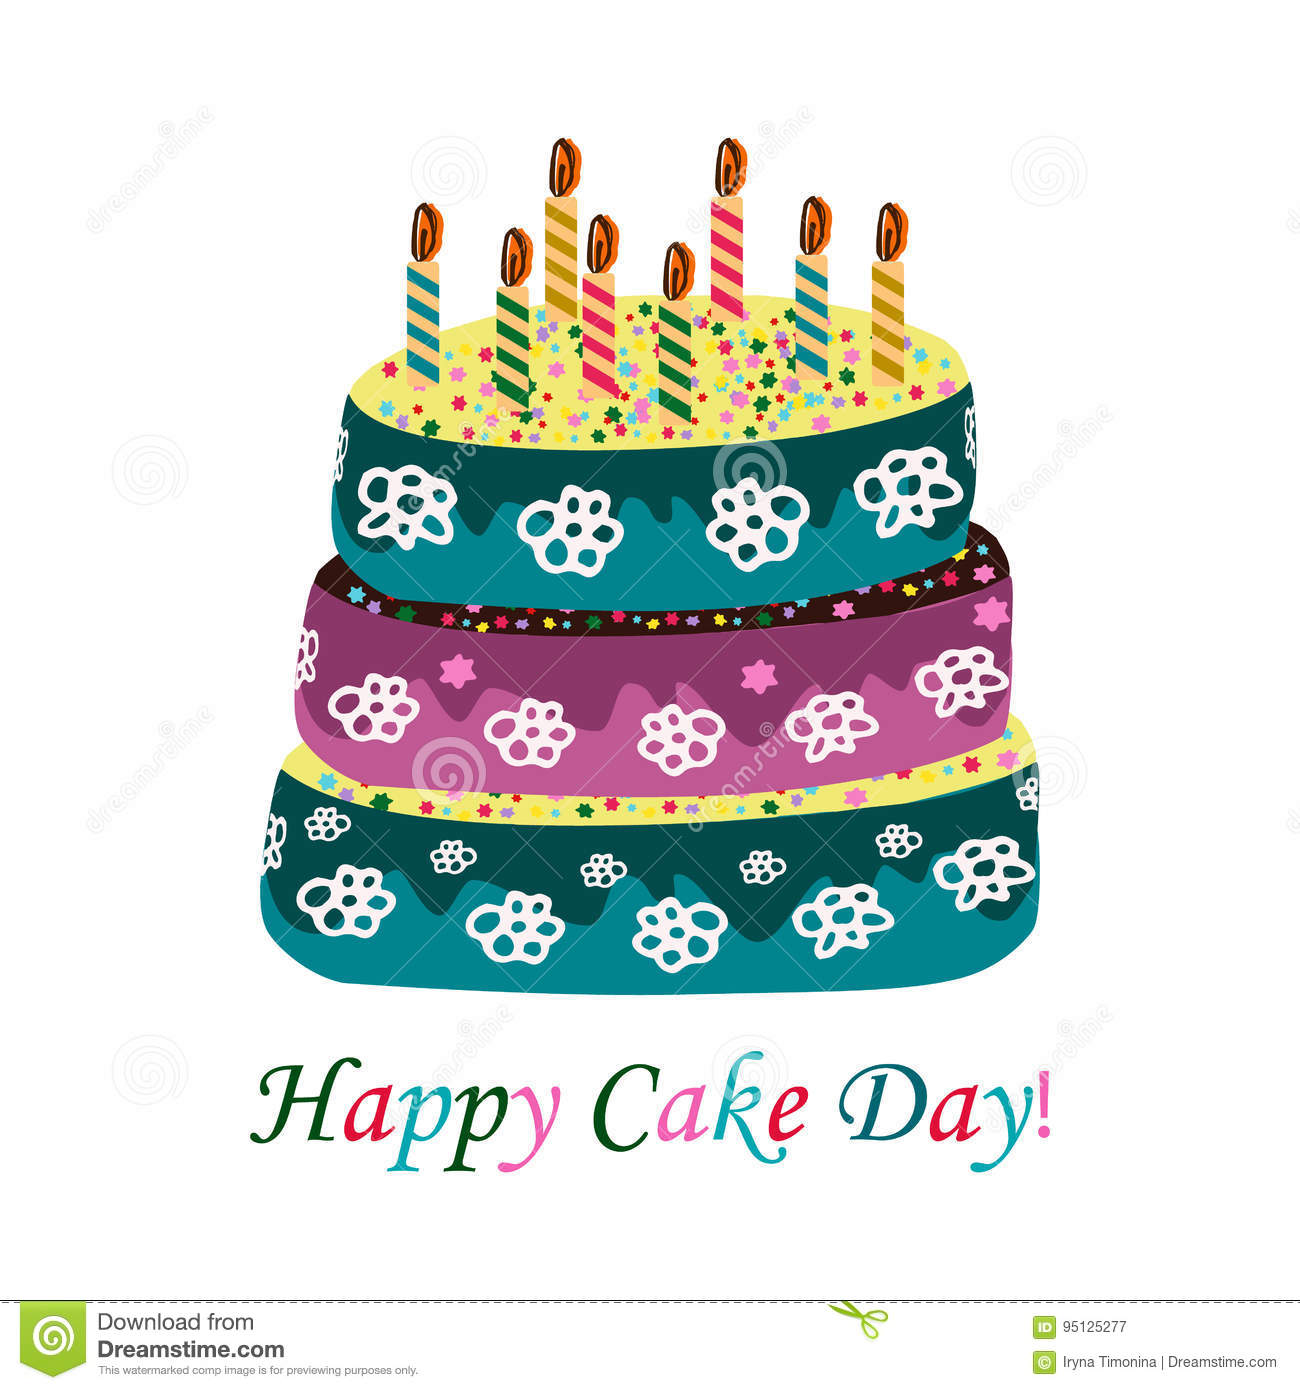 International Cake Day July 20 Cake With Candles Vector